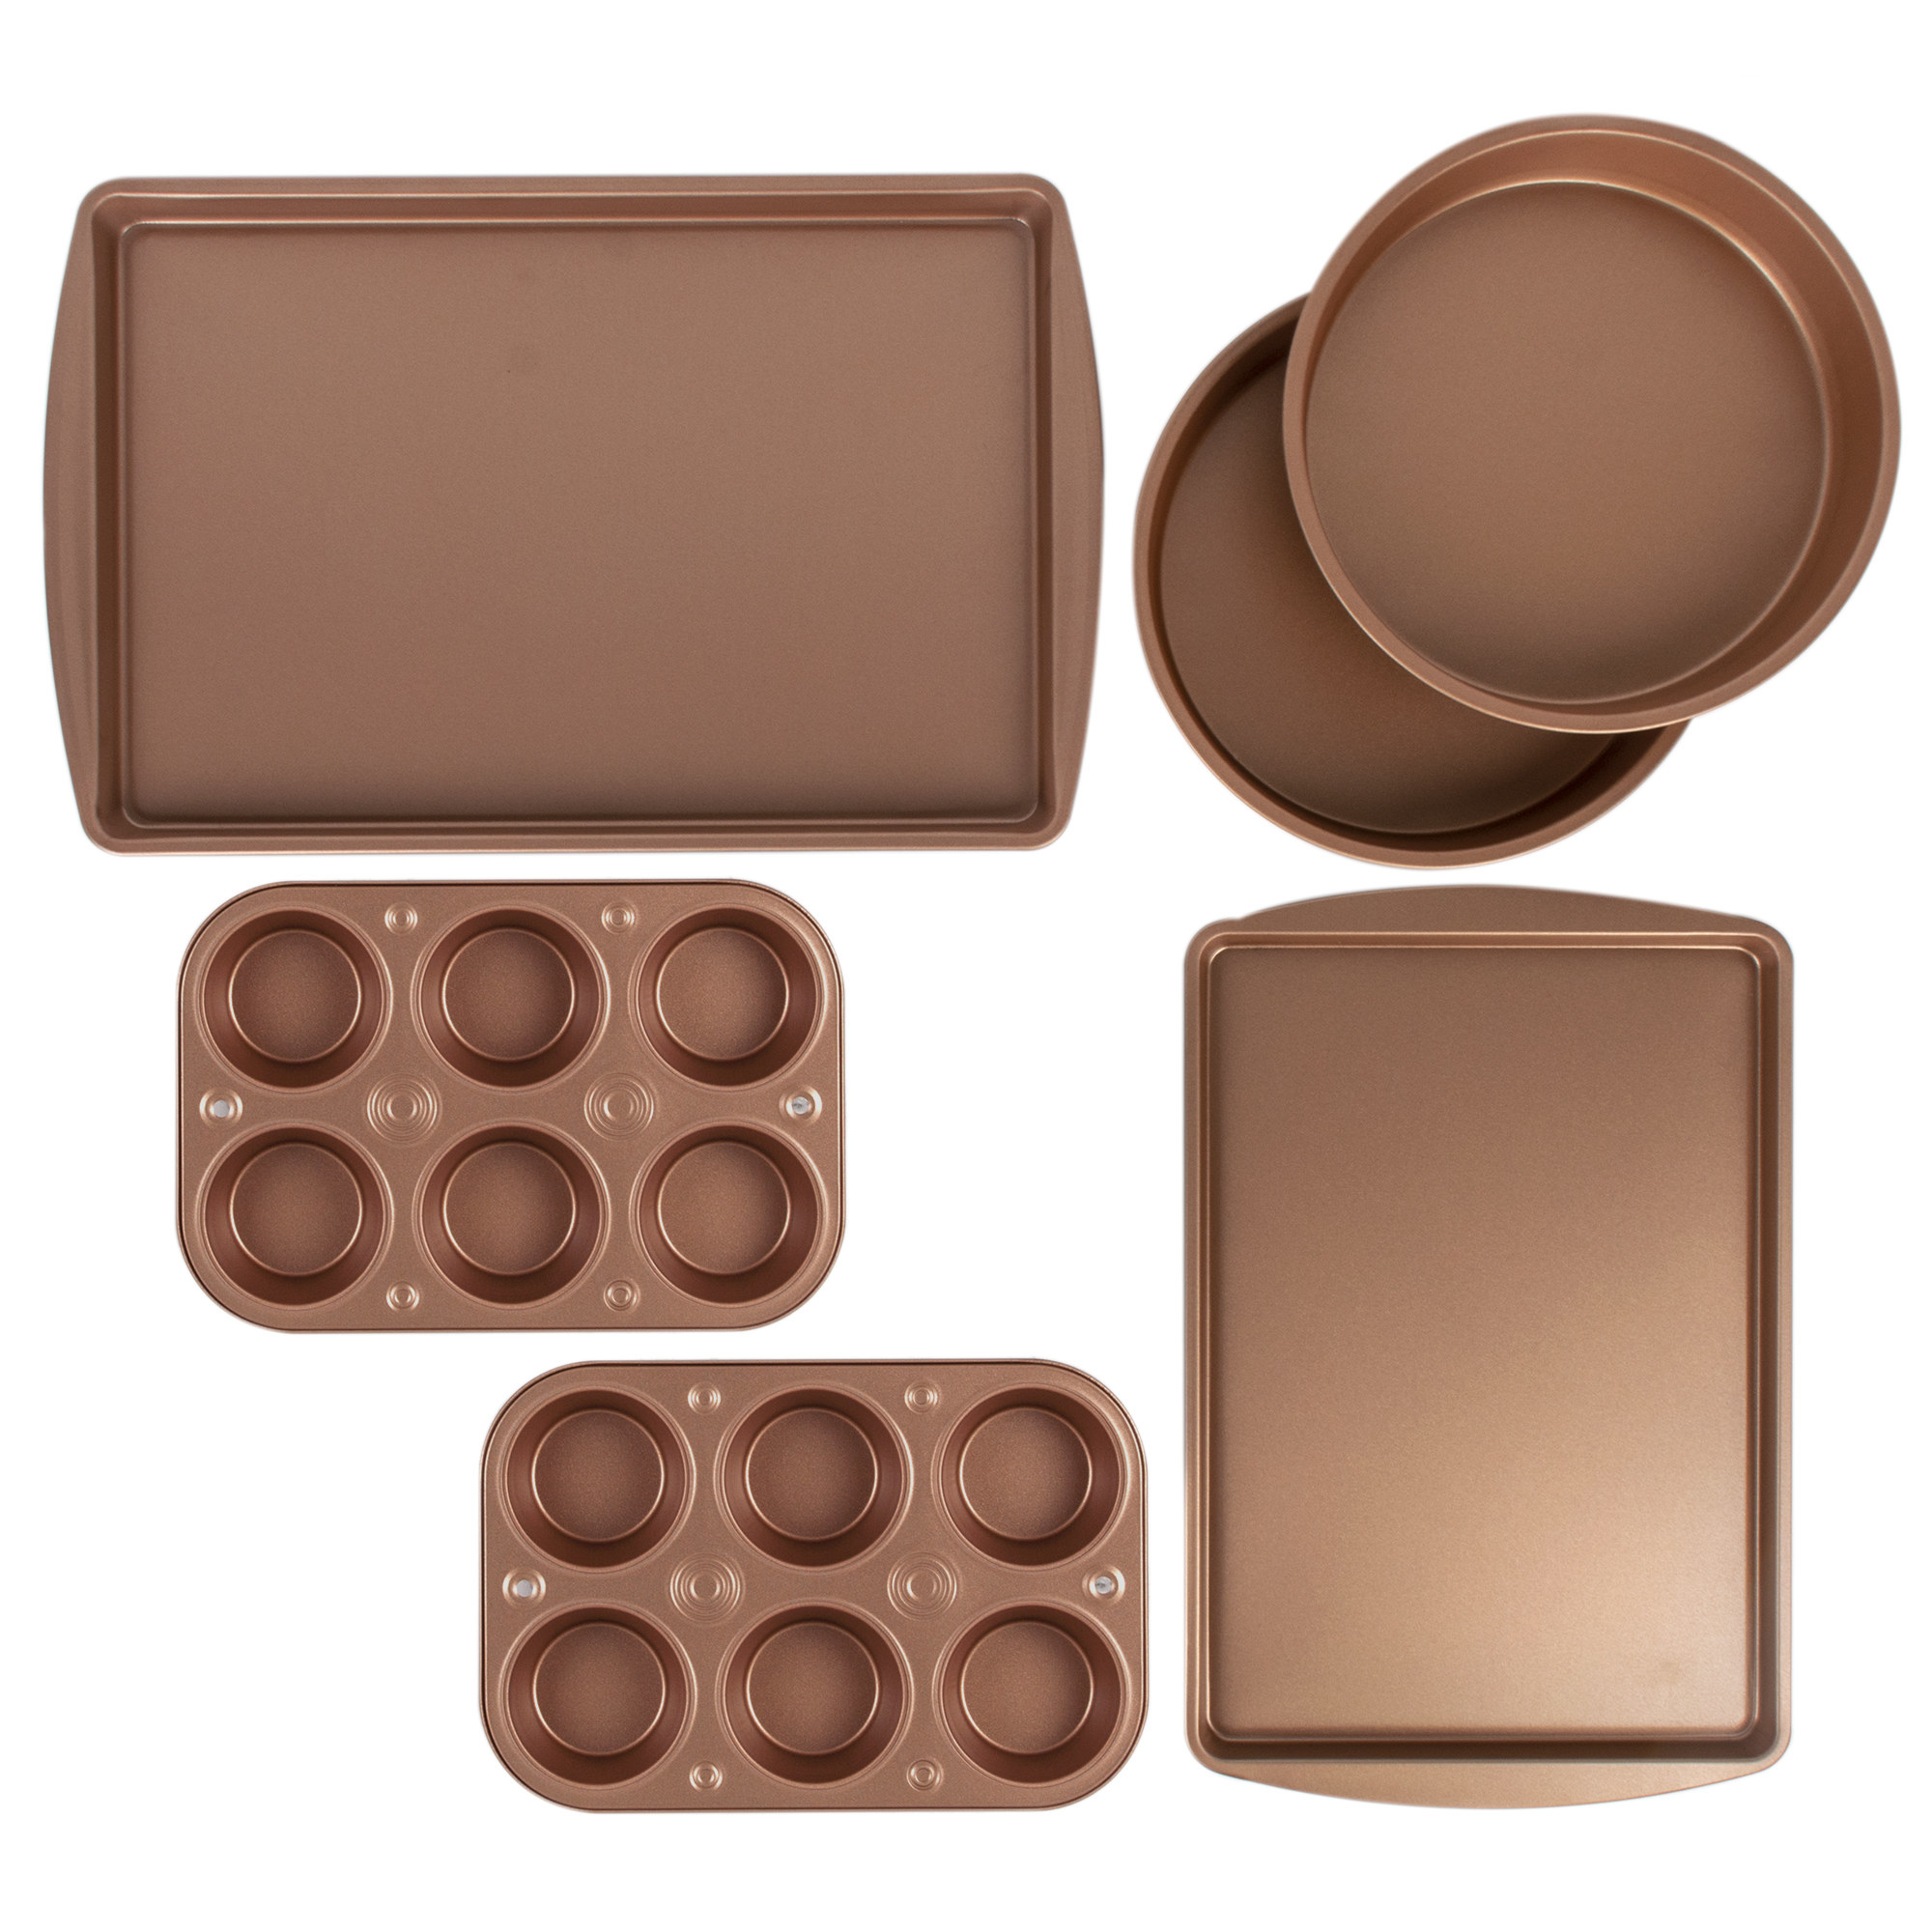 The bakeware set